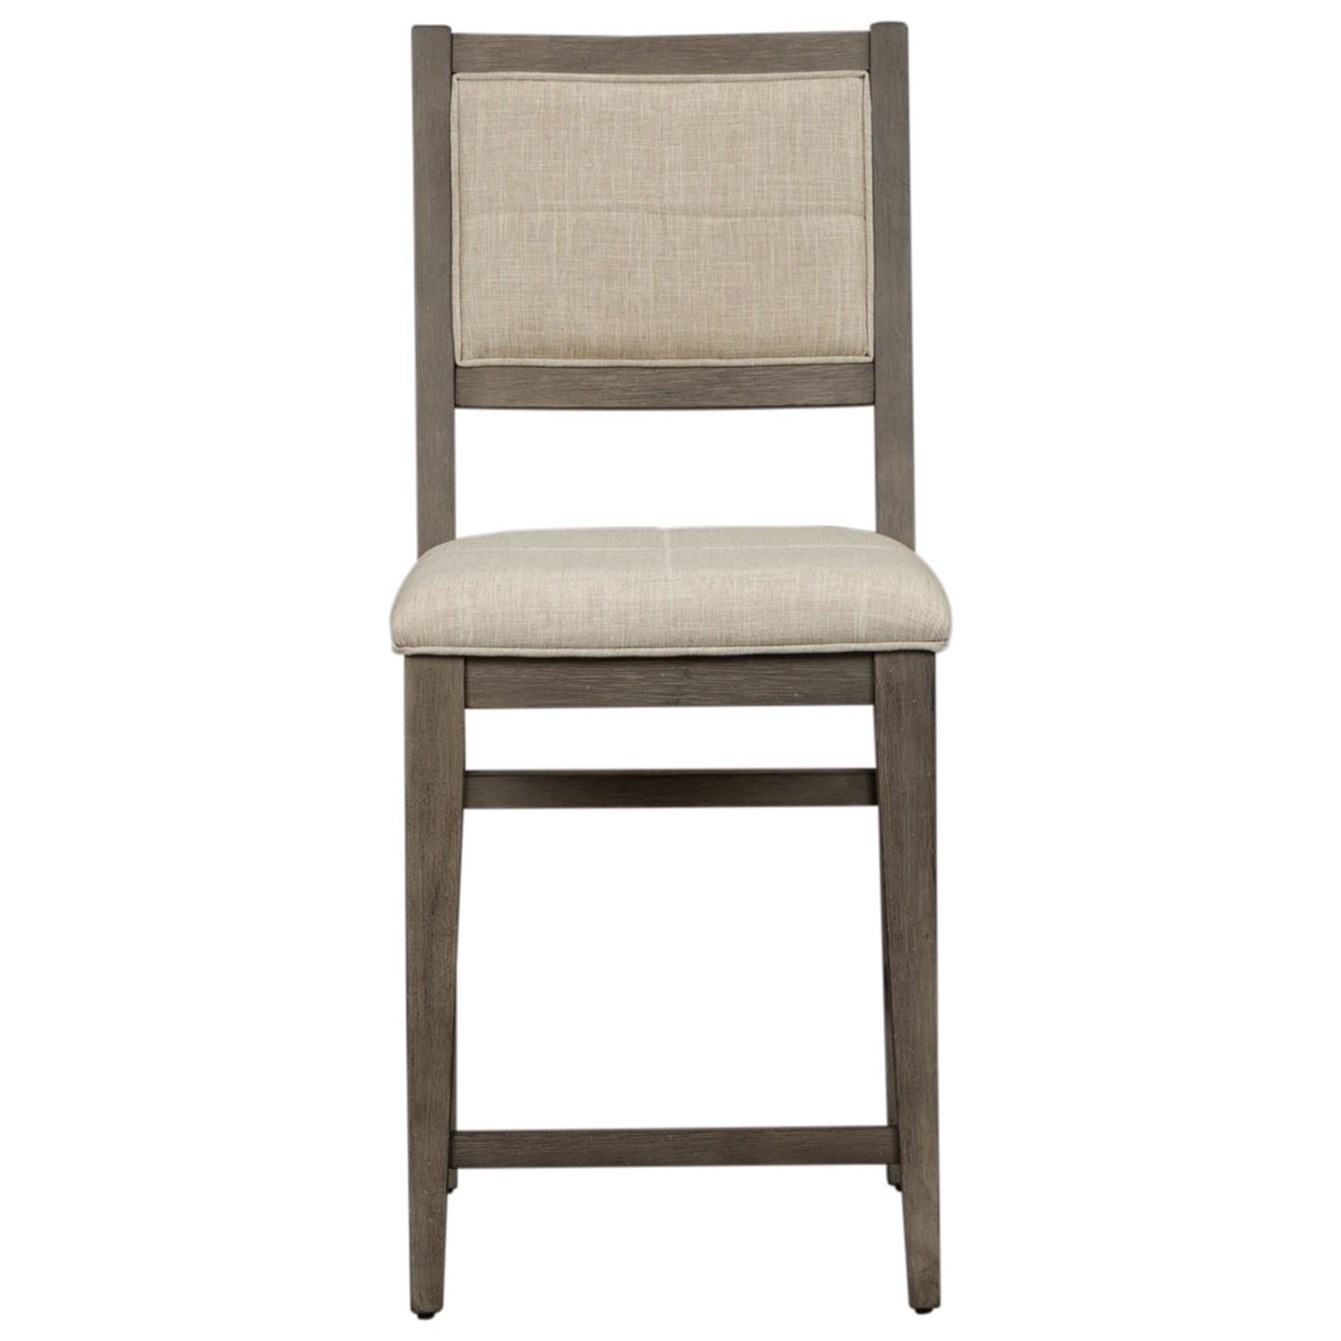 Crescent Creek Upholstered Counter Height Chair (RTA) by Liberty Furniture at Northeast Factory Direct